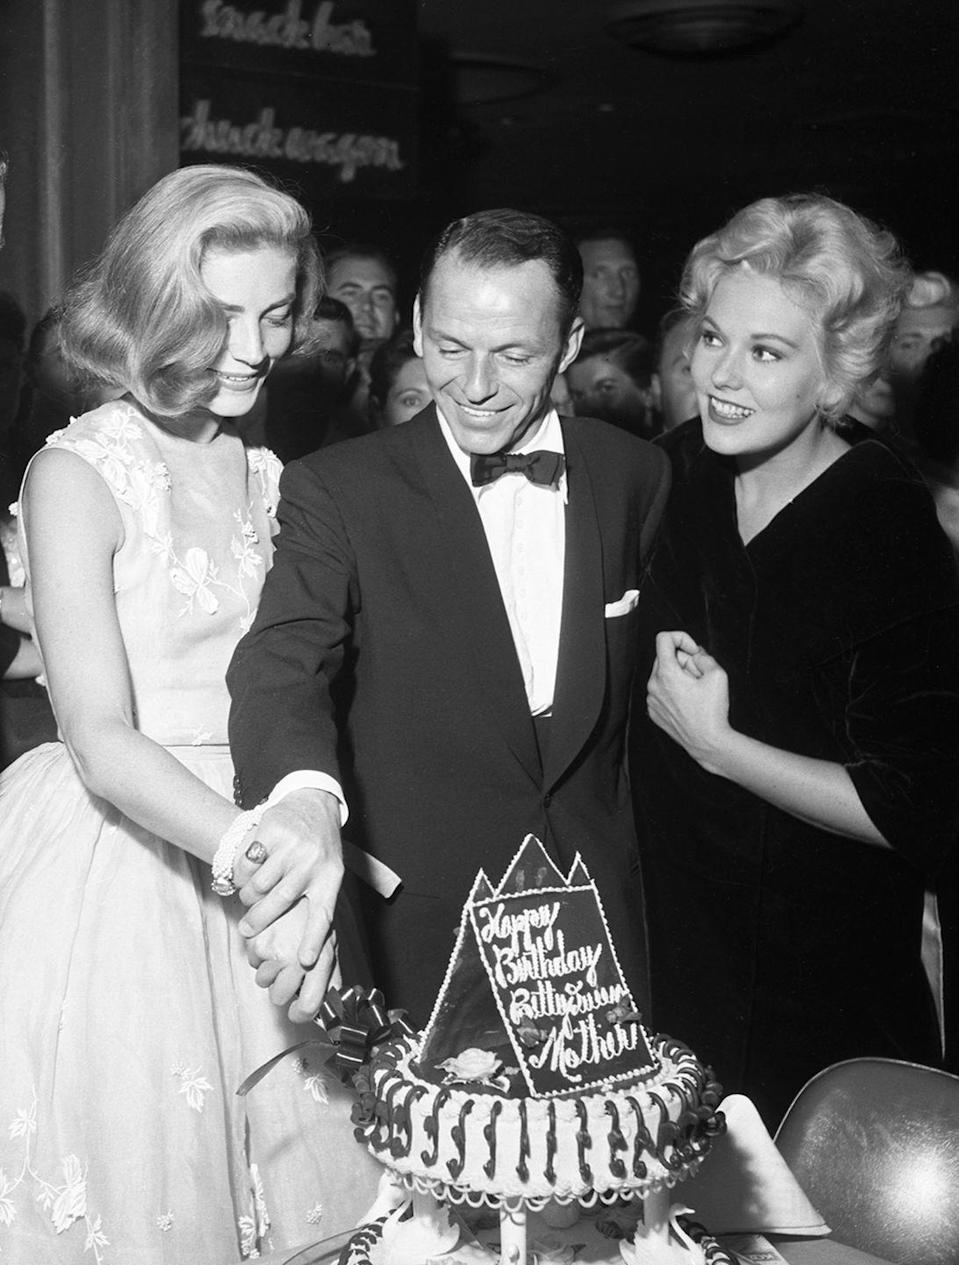 <p>Lauren Bacall, Frank Sinatra, and Kim Novak at the Sands hotel on September 14, 1956. During its heyday, the Sands was the center of entertainment and activity on the Strip.</p>